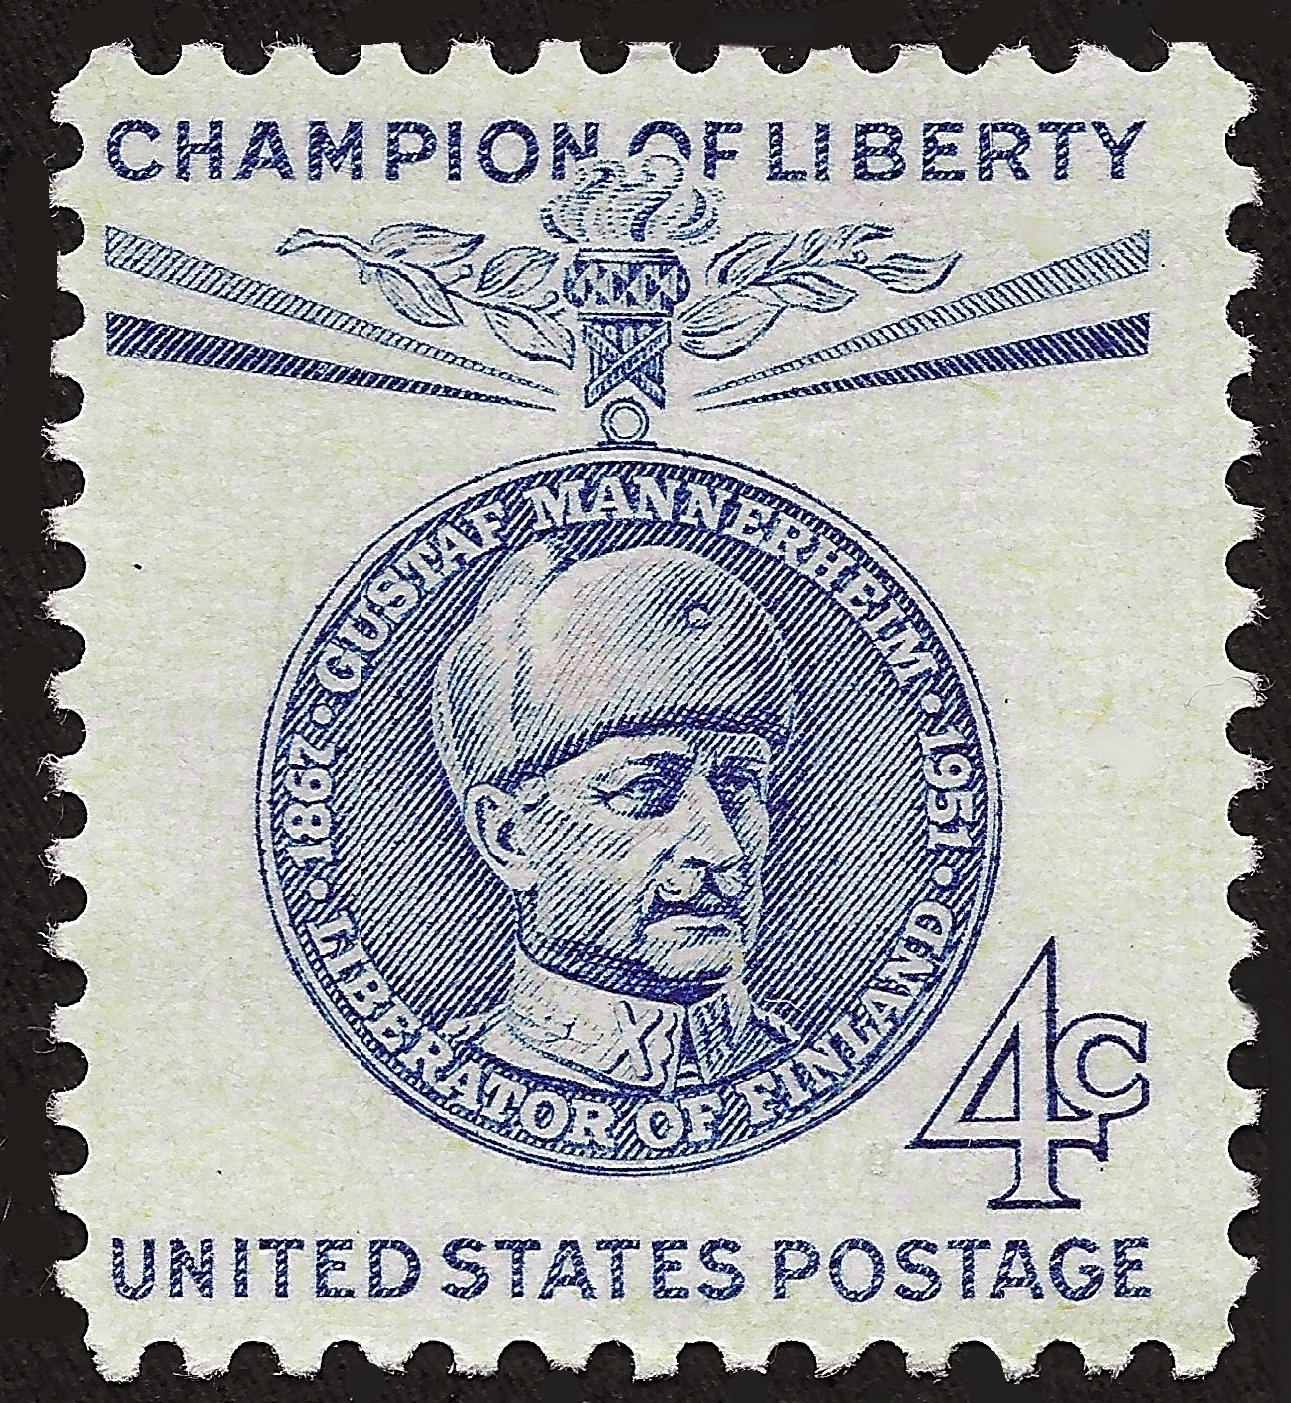 Us 4 Cent Postage Stamp 1960 Champion Of Liberty